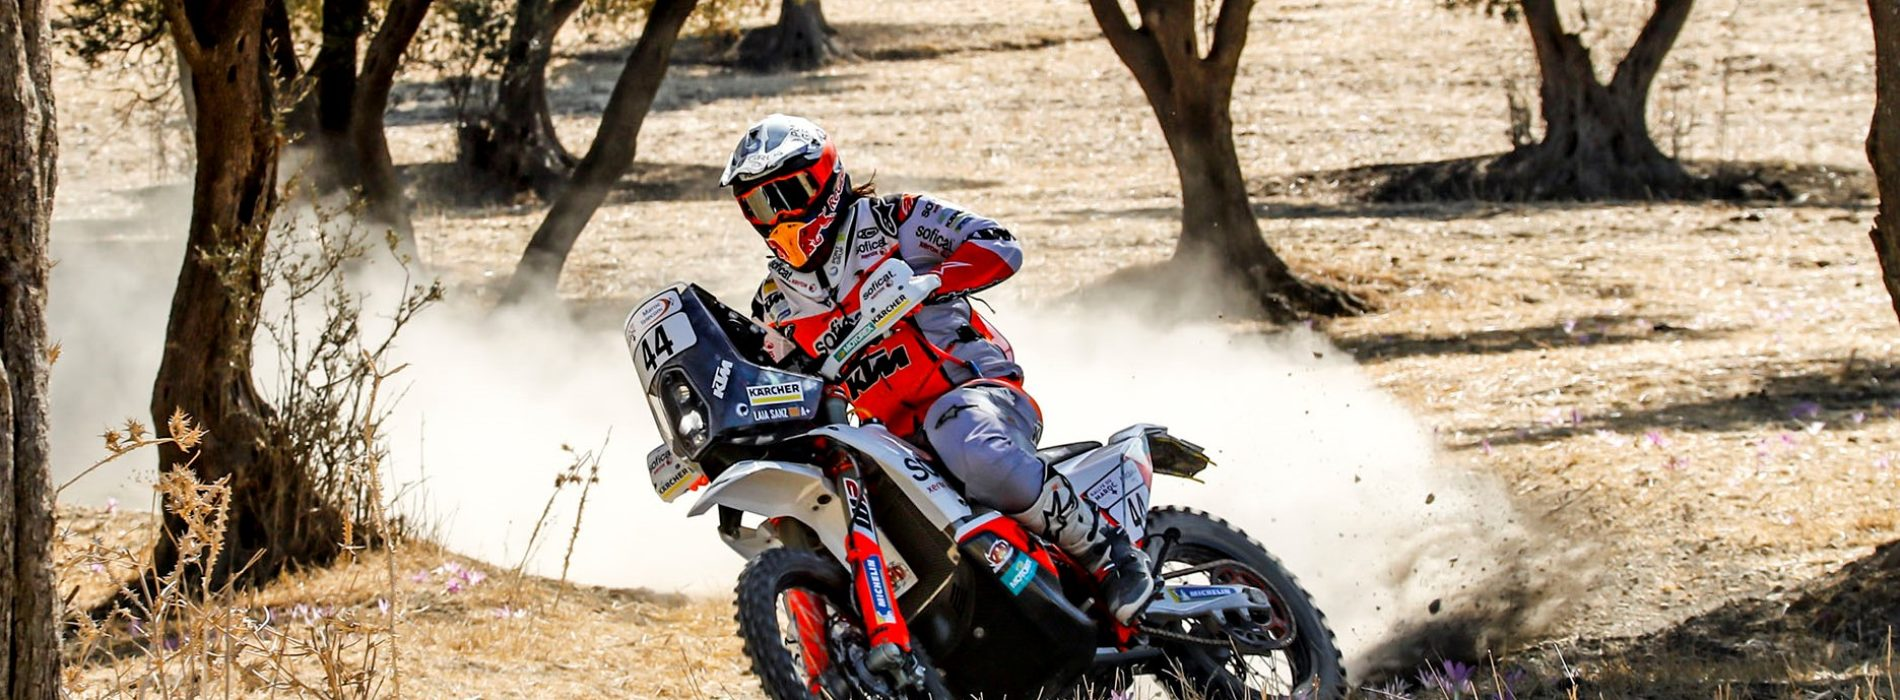 Laia Sanz racing Rally of Morocco October 4th to 9th in preparation for 2020 Dakar.